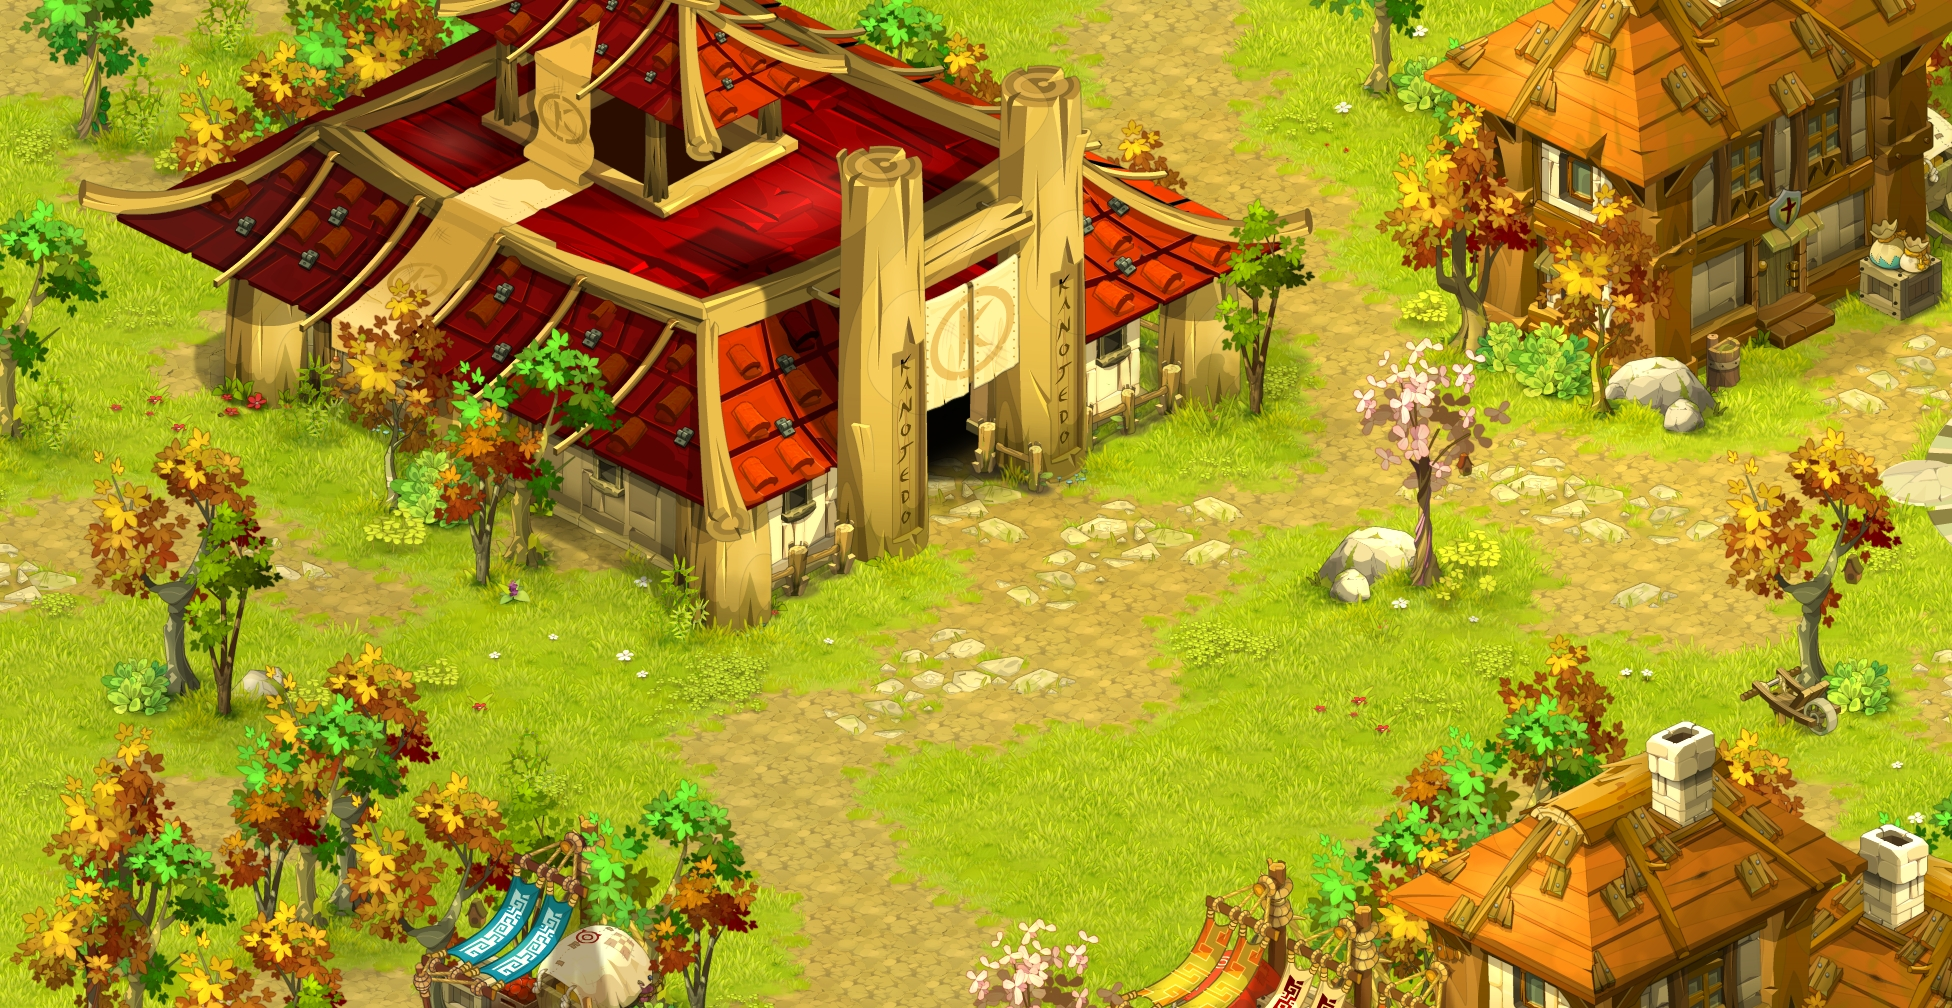 Passage En 169 Dofus Devblog Dofus The Strategic Mmorpg